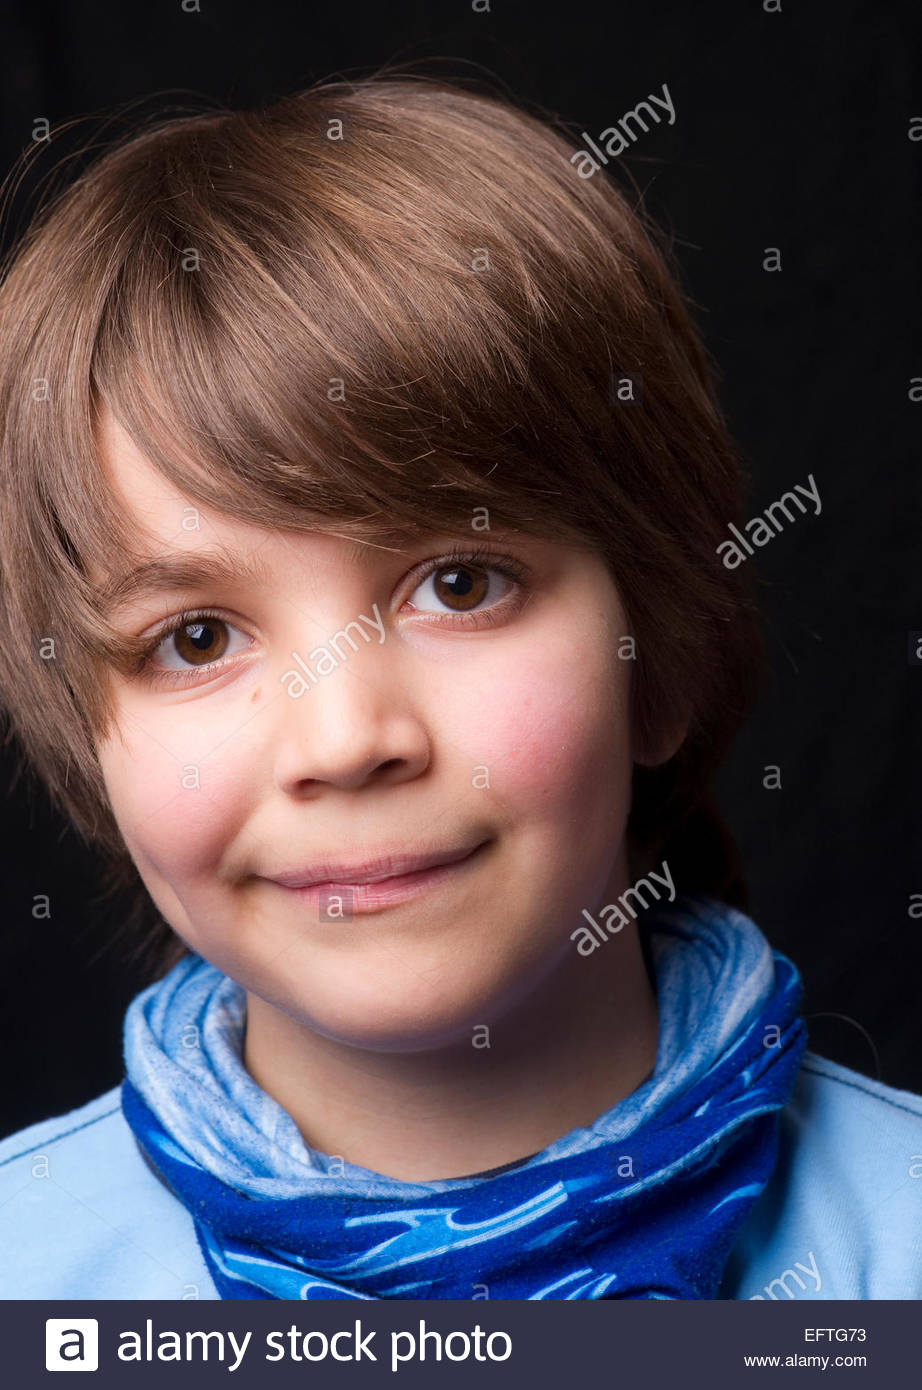 8 Year Boy Bedroom Design: Age 8 Years Face Portraits Headshot Eight Year Old Boy